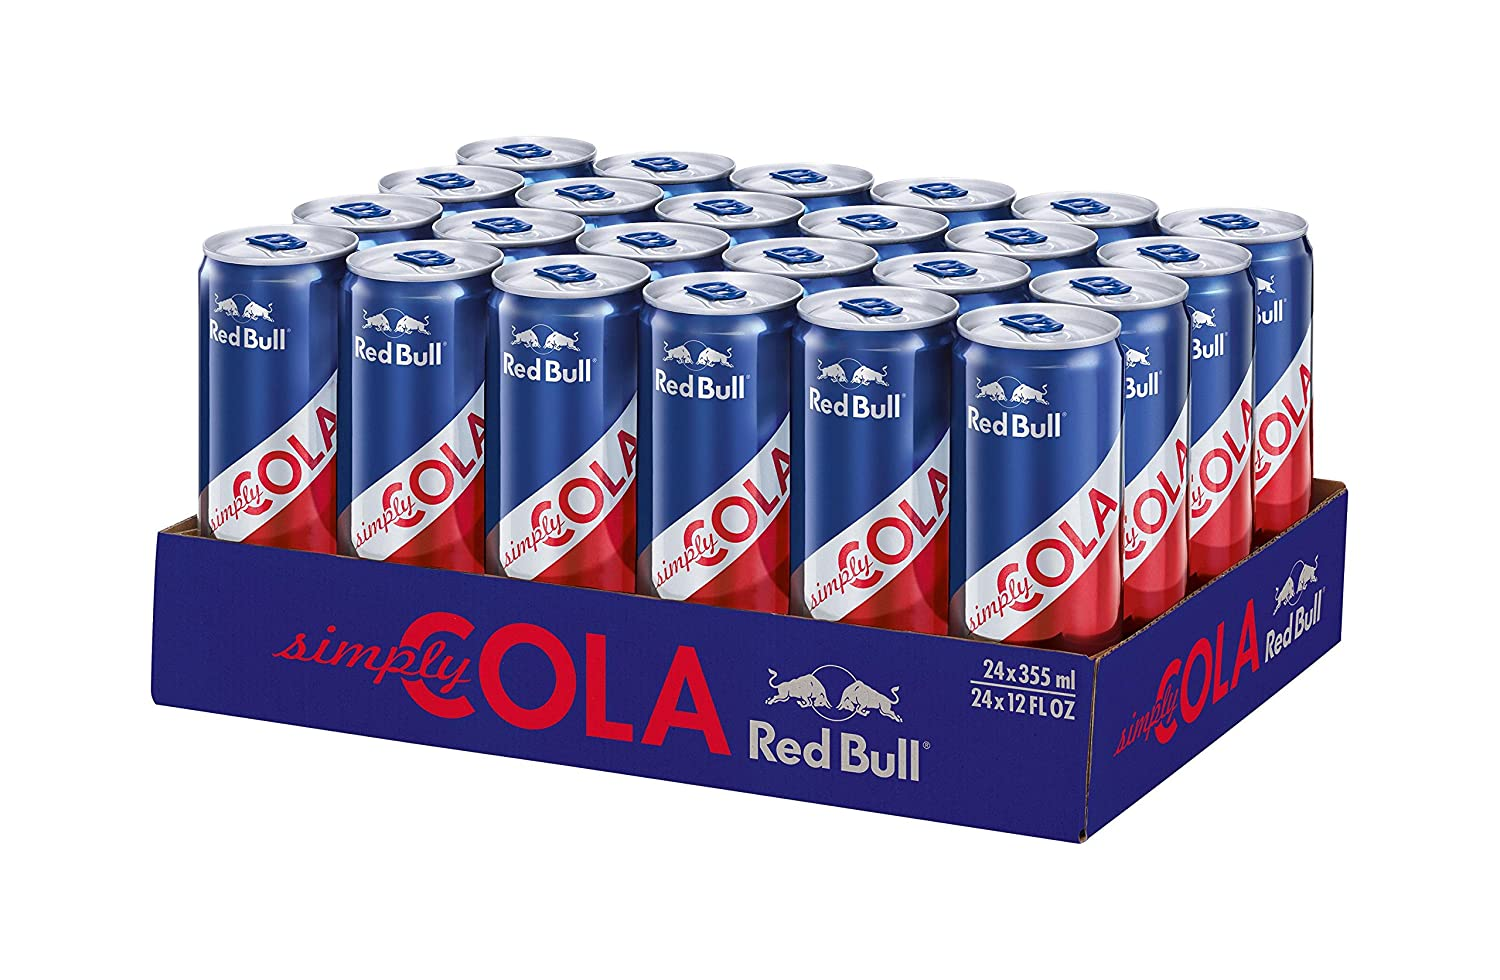 Red Bull Kühlschrank Dose : Red bull simply cola er pack ml amazon